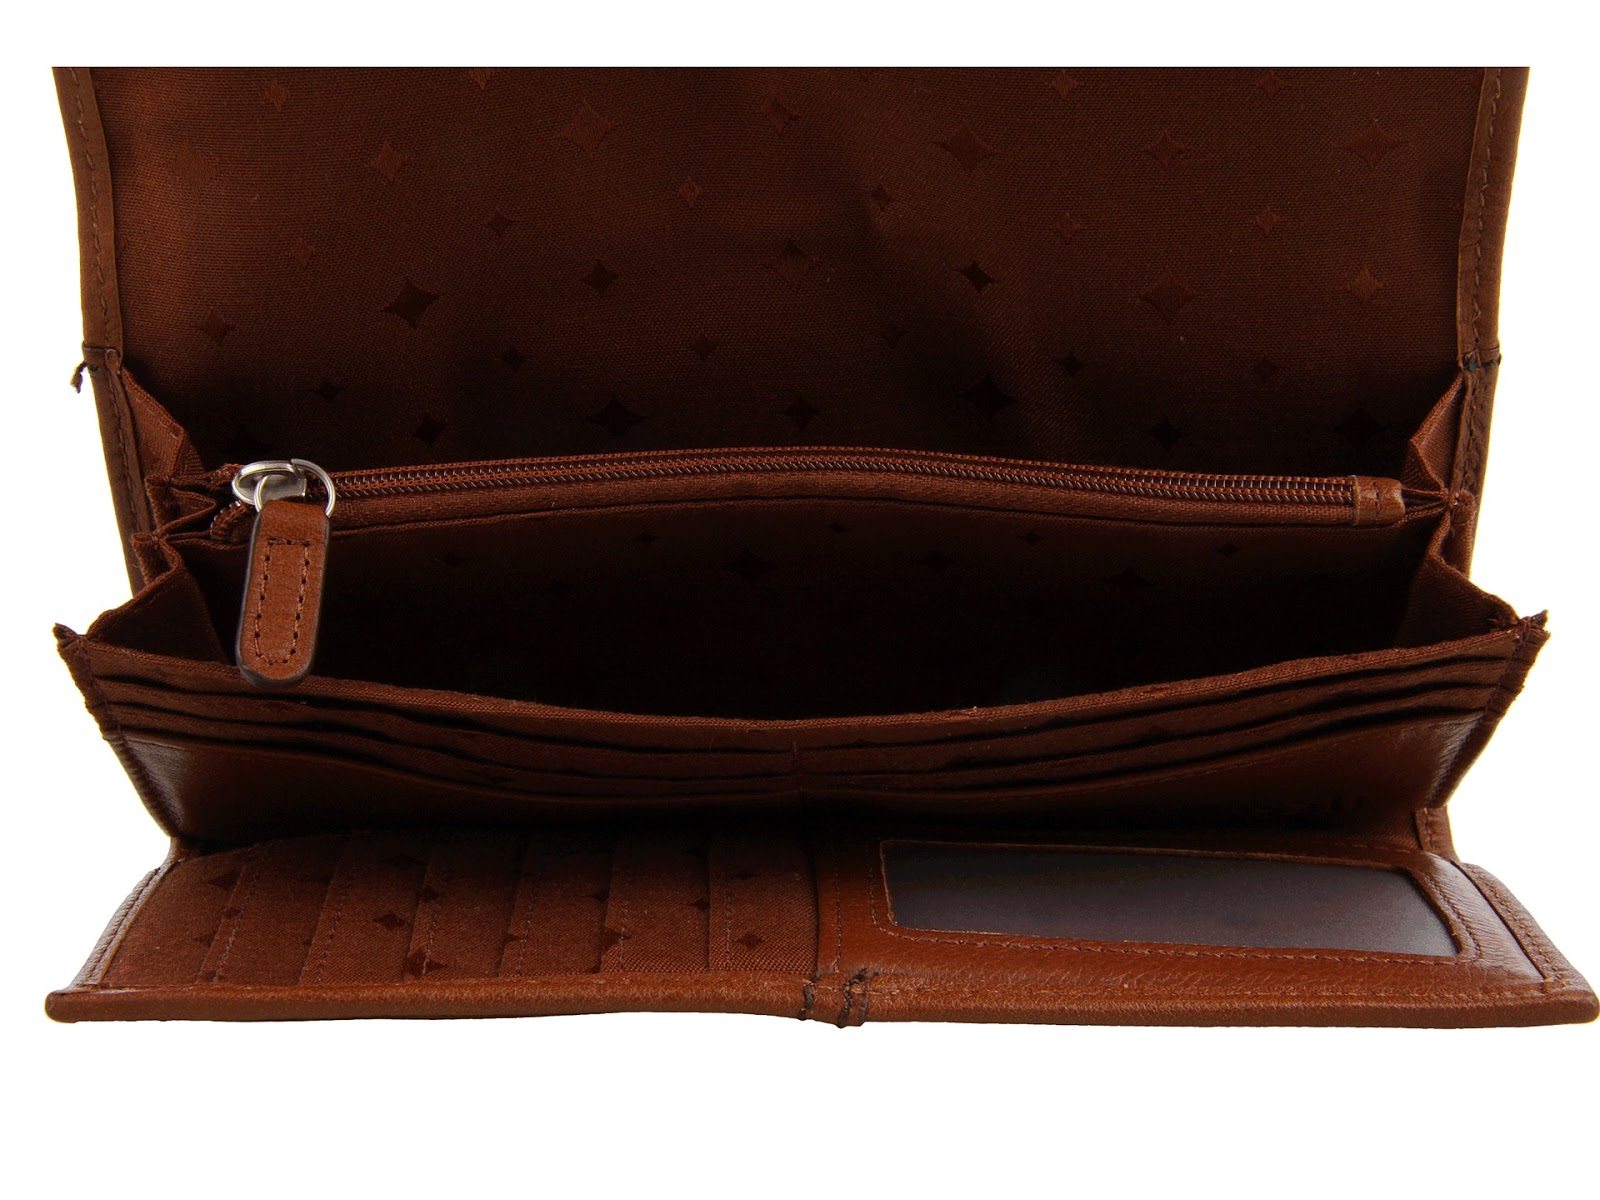 USA Boutique: Fossil Marlow Flap Clutch Wallet